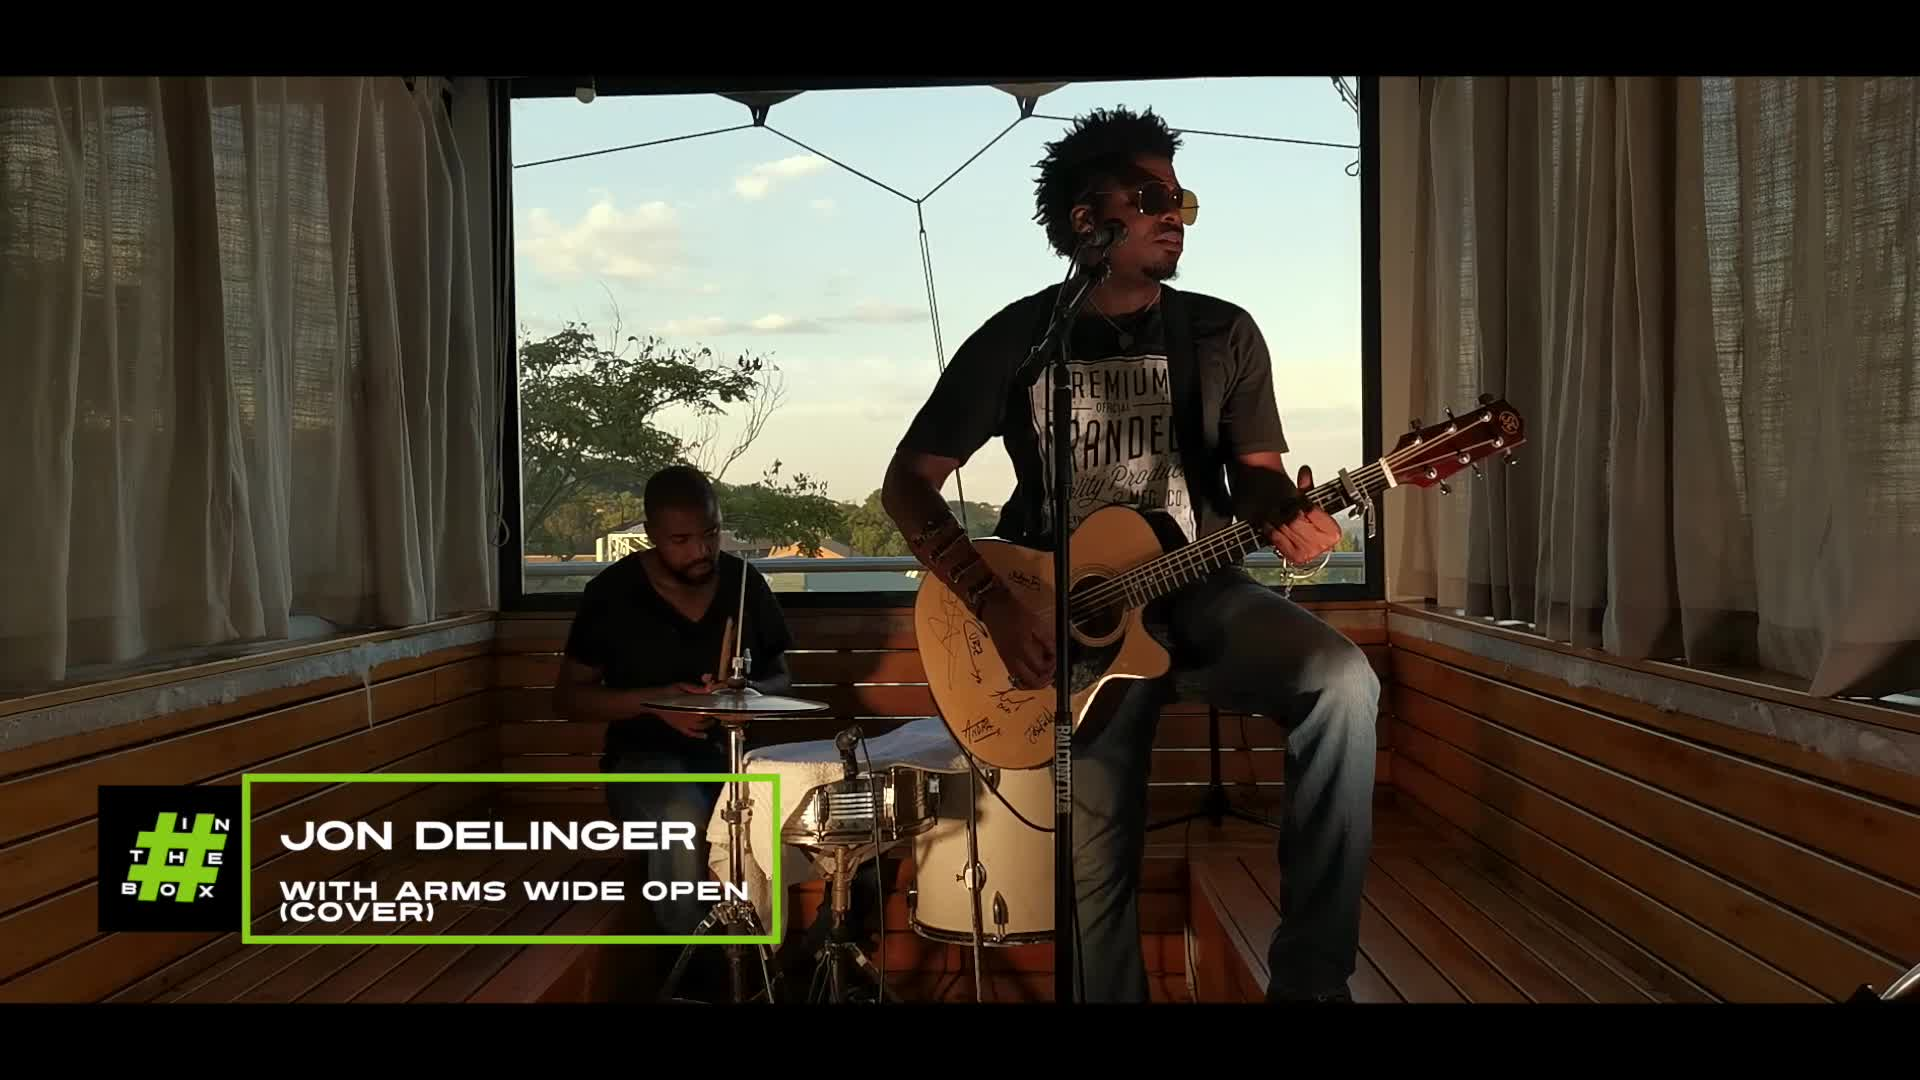 InTheBox - Jon Delinger - With Arms Wide Open